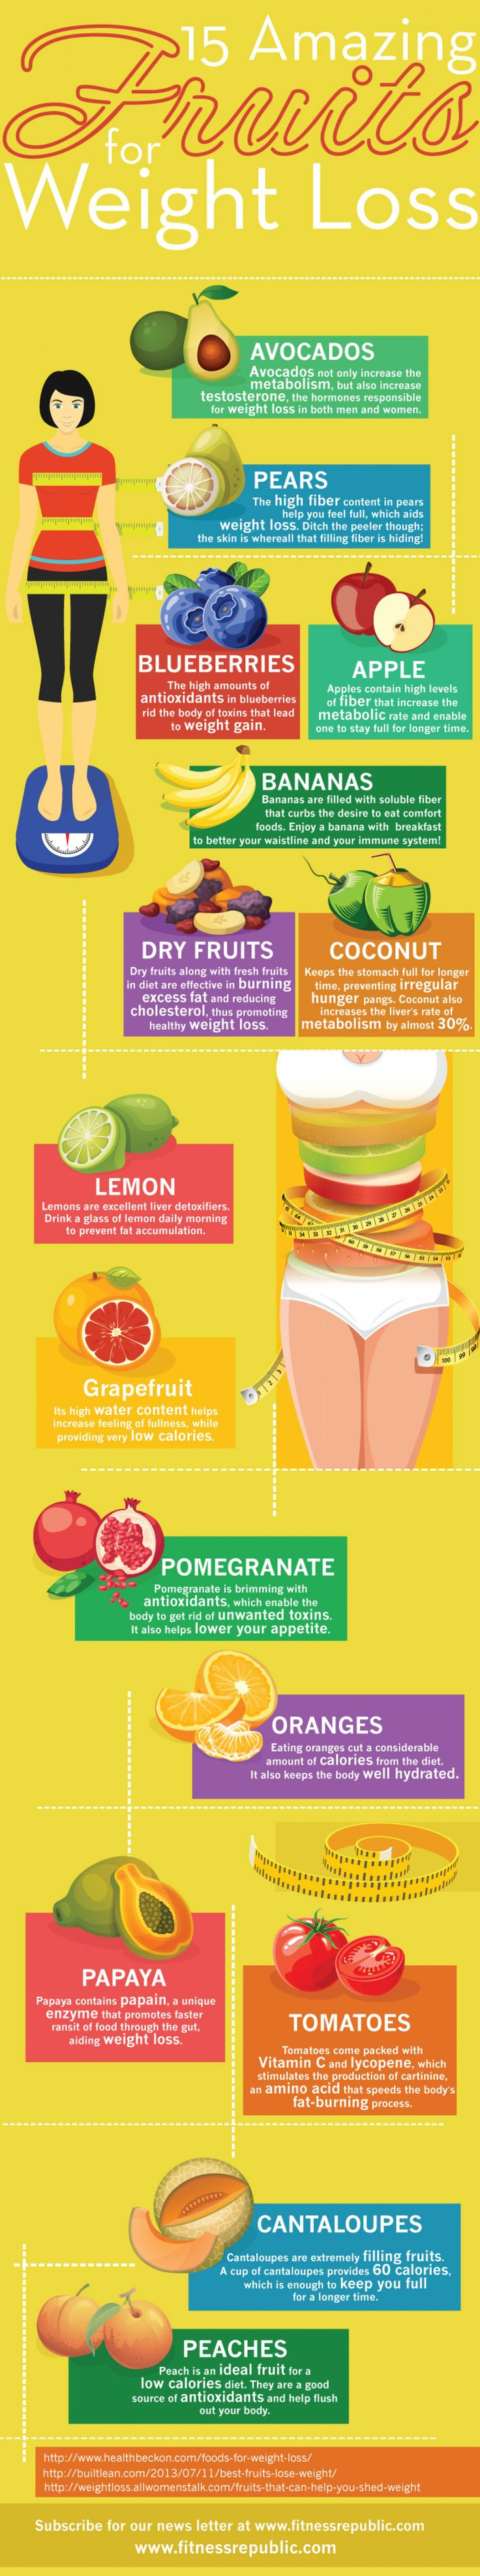 15 best fruits that can help you shed weight #coupon code nicesup123 gets 25% off at Provestra.com Skinception.com